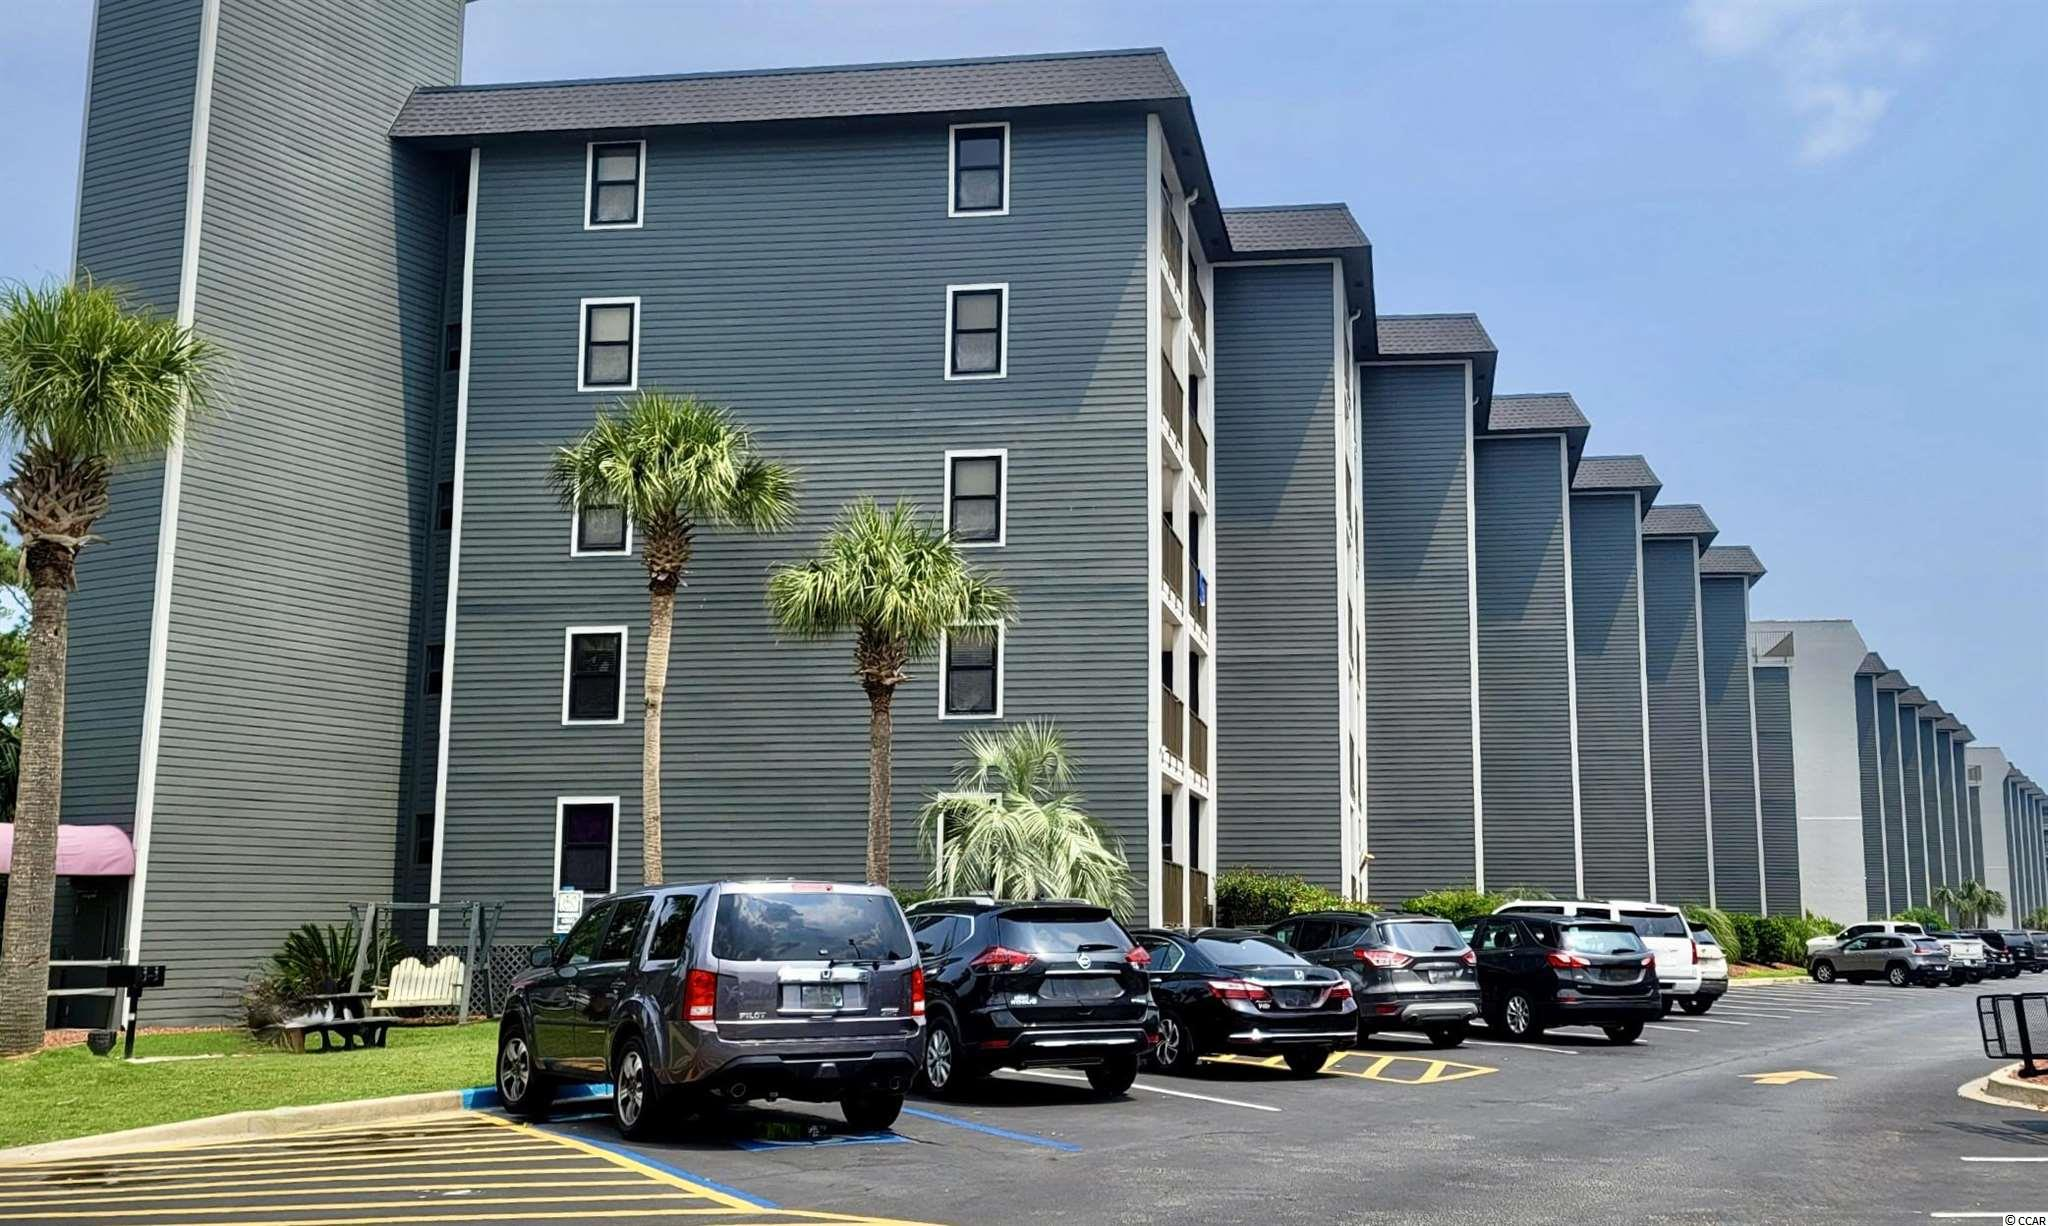 Great investment opportunity in Myrtle Beach Resort - this two bedroom two bathroom fully-furnished Oceanview condo has great rental income potential.  Completely turnkey and open plan layout between the kitchen, dining and living room areas.  This unit boasts many upgrades such as new HVAC, newer water heater, luxury cabinetry in the kitchen, granite countertops, updated lighting fixtures, luxury vinyl plank flooring in living areas. You can see the ocean and experience the morning sunrise right from the extended balcony. Myrtle Beach Resort is one of the well-known and busiest rental destination resorts in the Myrtle Beach area and includes access to private beach access, oceanfront pool, another large pool with lazy river and water features, Quarterdeck oceanfront bar and grill, tennis courts, games/arcade rooms, playground and walking trails!  You will not want to miss out on this amazing opportunity for steady rental investment income as well as a great vacation destination - schedule your showing today!